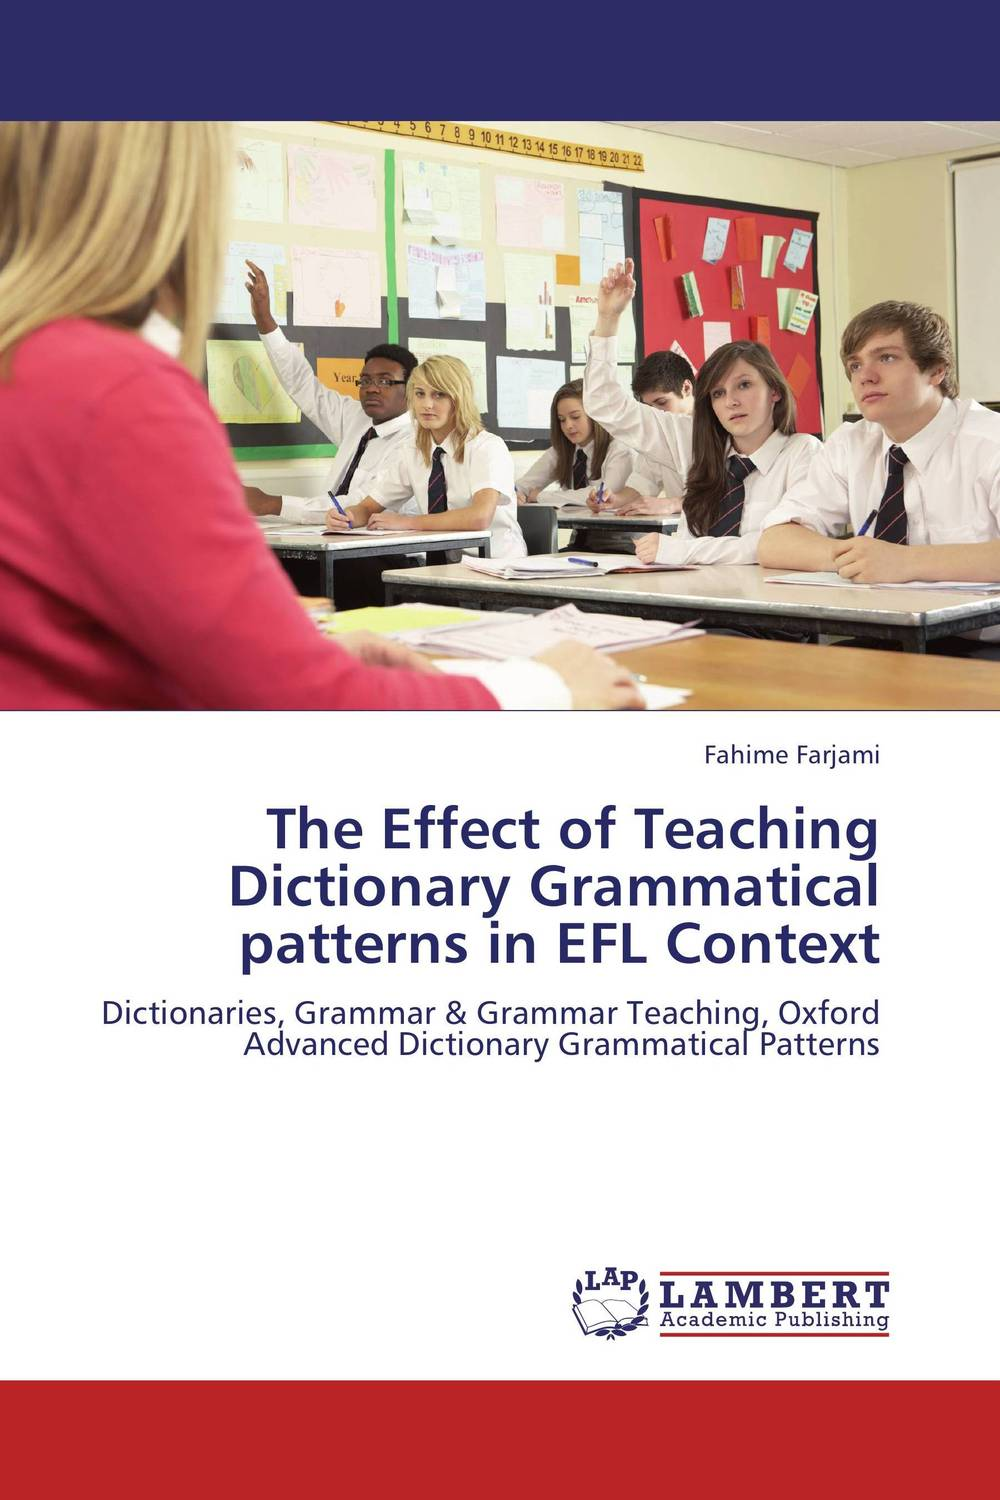 The Effect of Teaching Dictionary Grammatical patterns in EFL Context the use of song lyrics in teaching english tenses